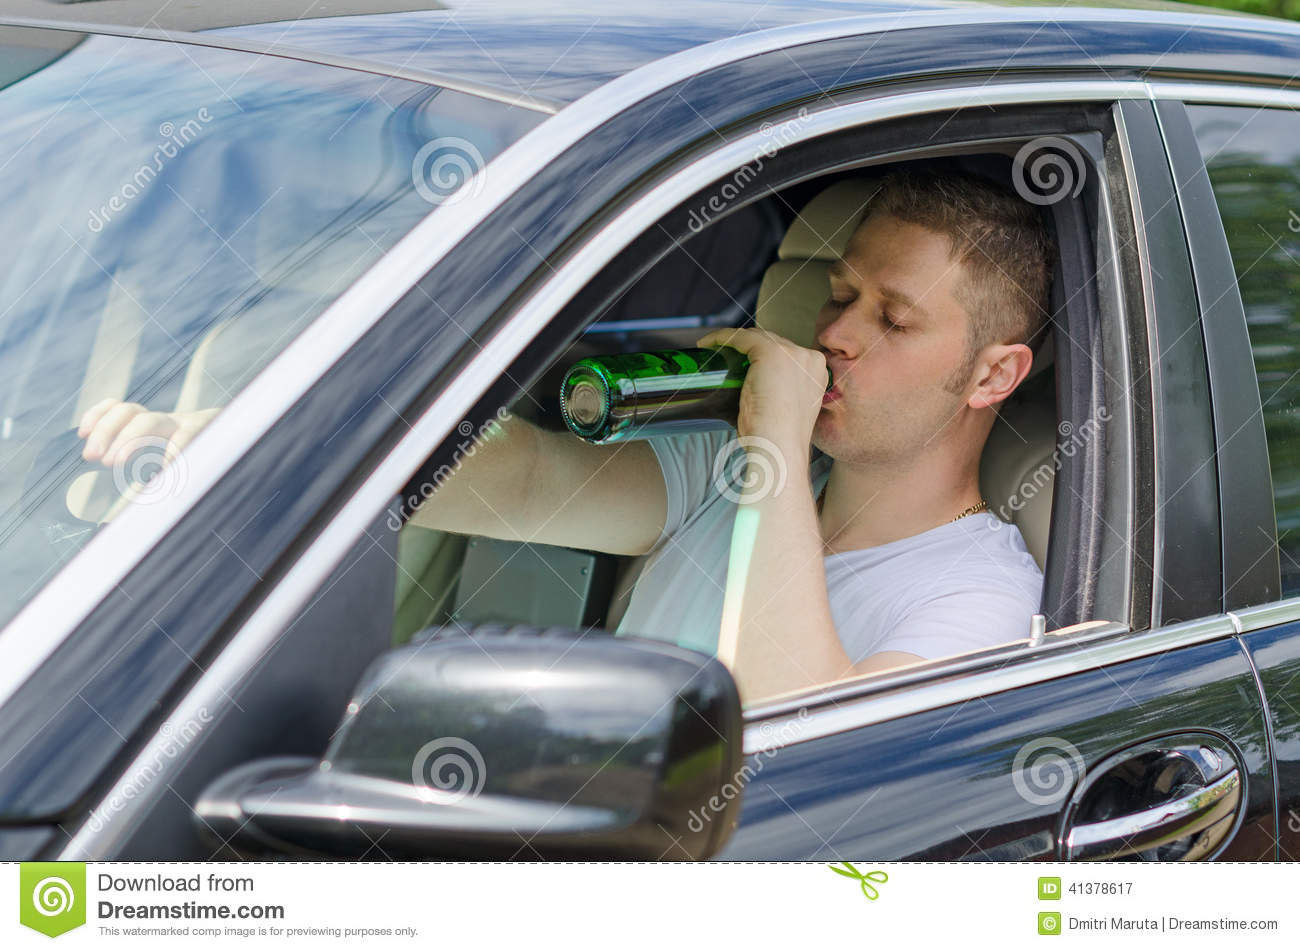 essay about driving under the influence Driving under the influence ( impairment and arrest an essay) introduction in this essay i will discuss some of the more interesting points about driving under the.